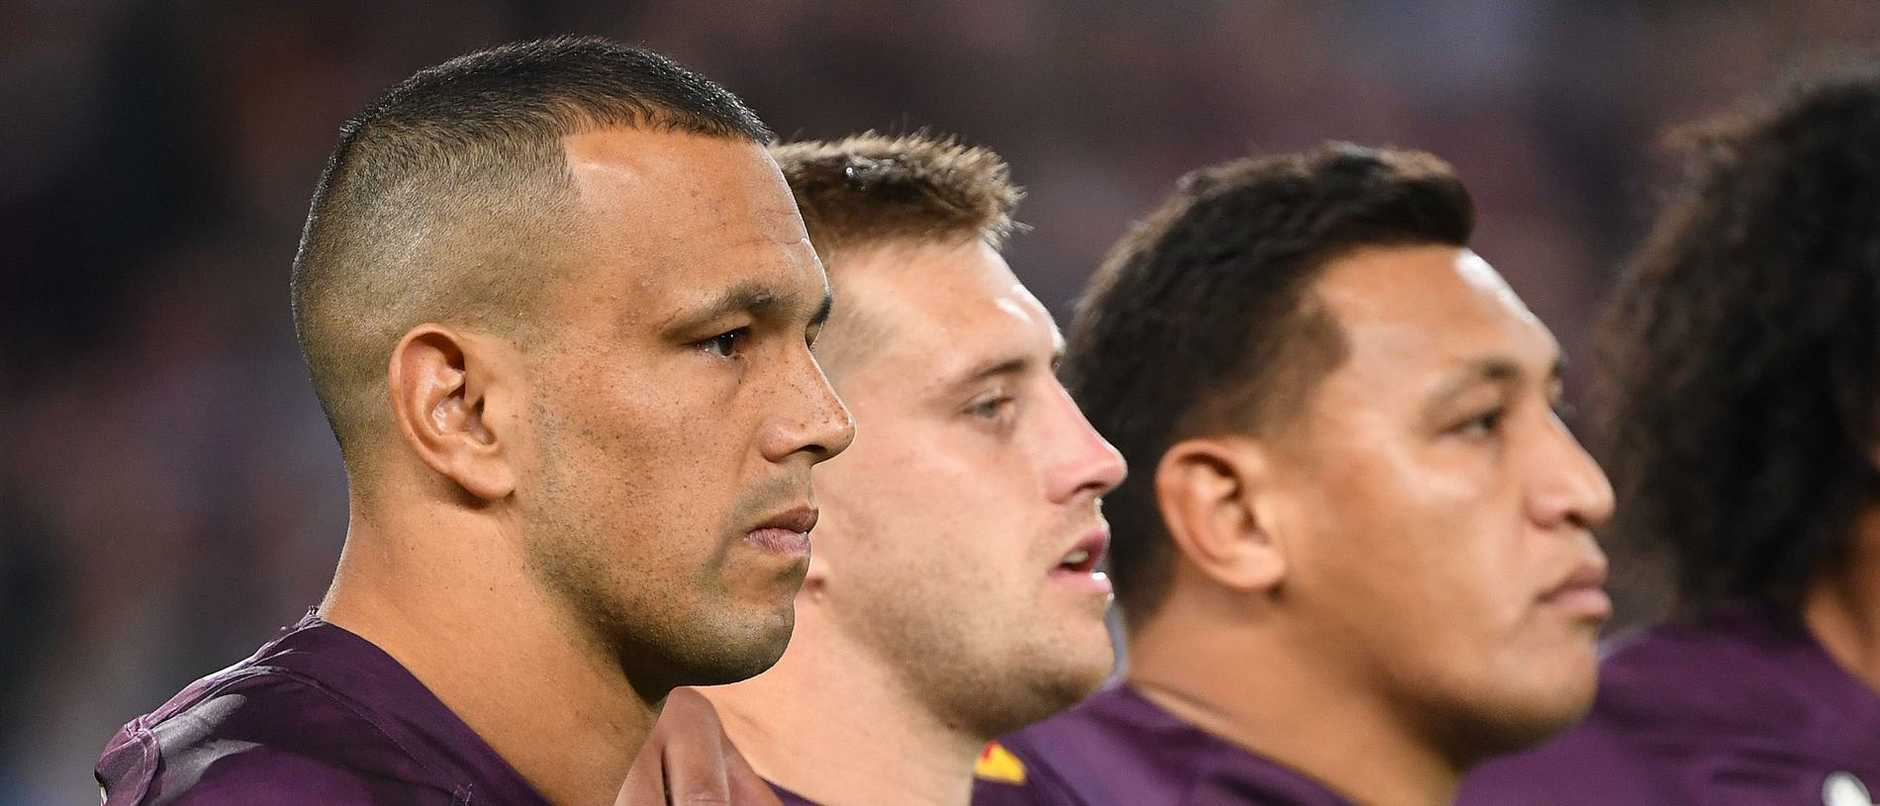 The Maroons' Will Chambers, Cameron Munster and Josh Papalii link arms during a rendition of the national anthem last year. Picture: Dave Hunt/AAP